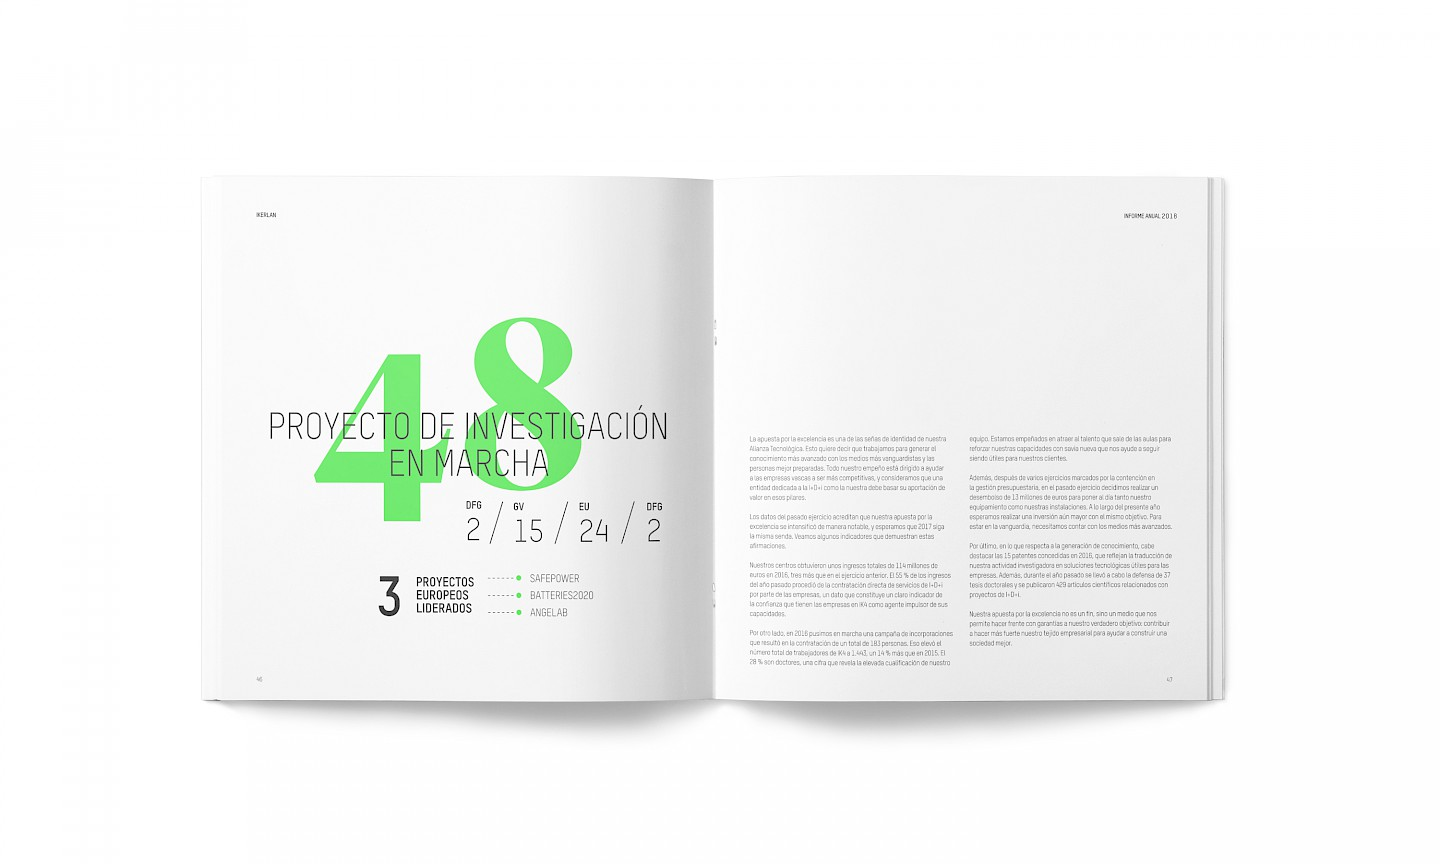 technology editorial_8 branding move ikerlan design